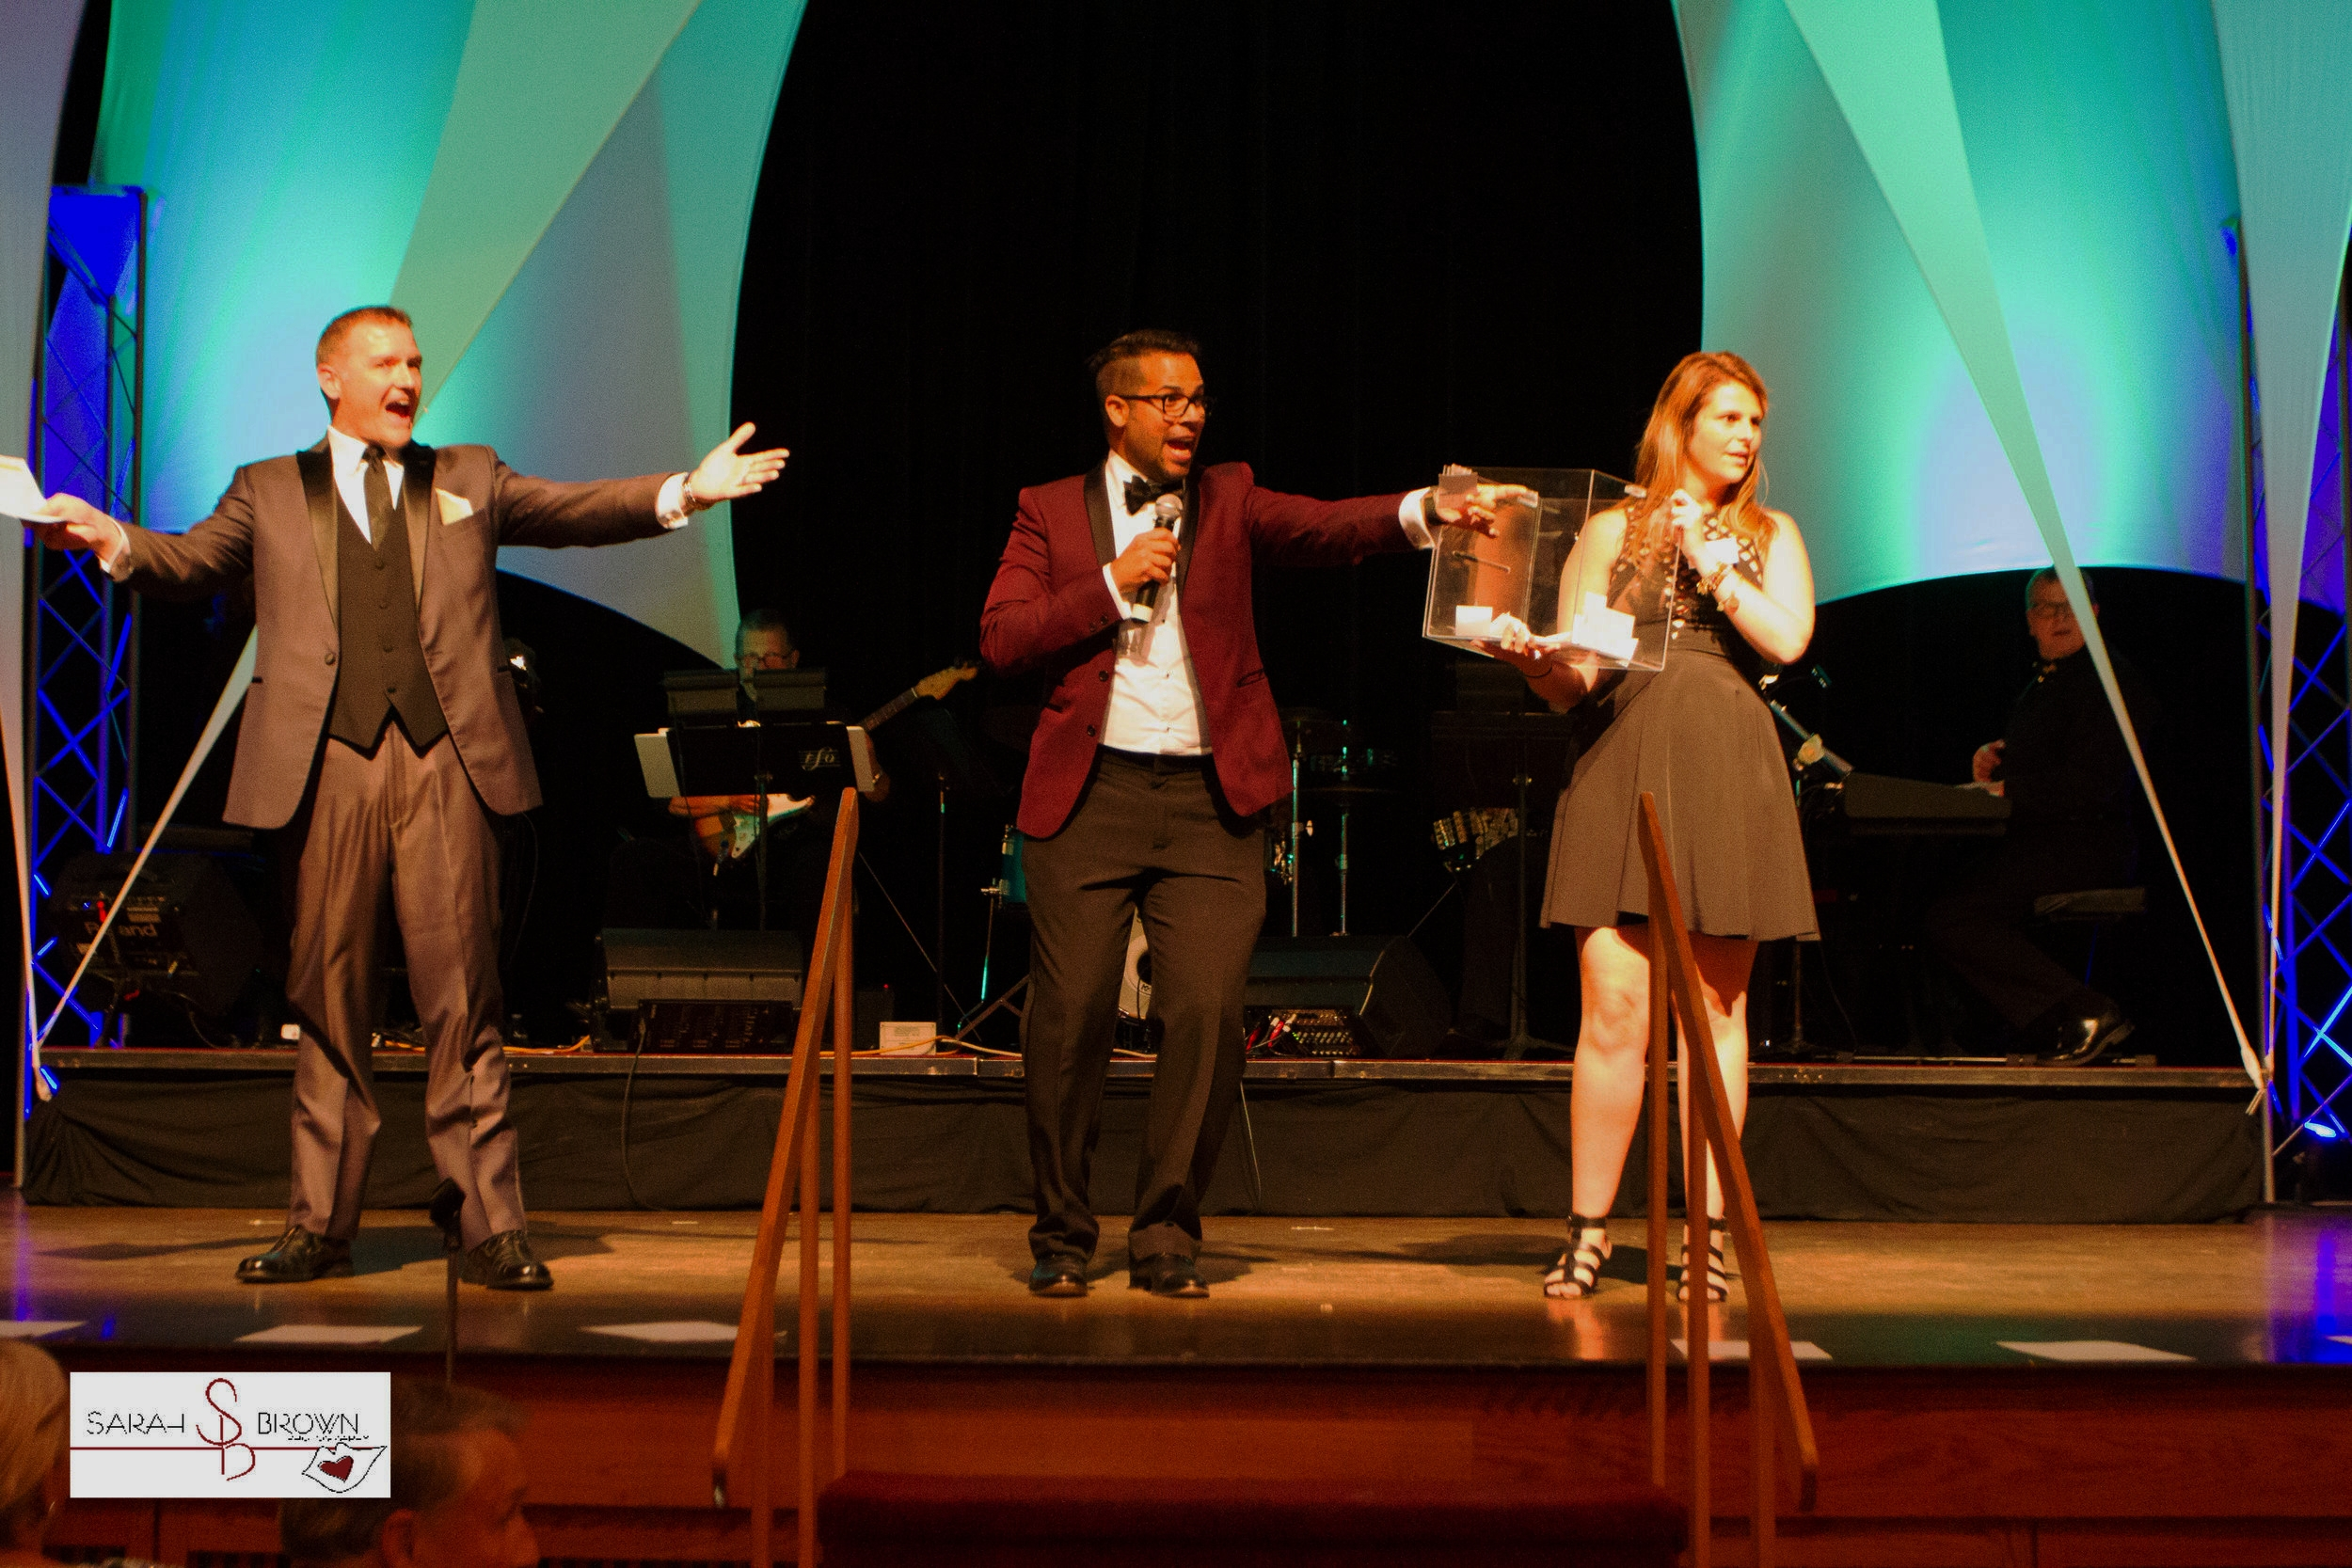 Emcee Services -